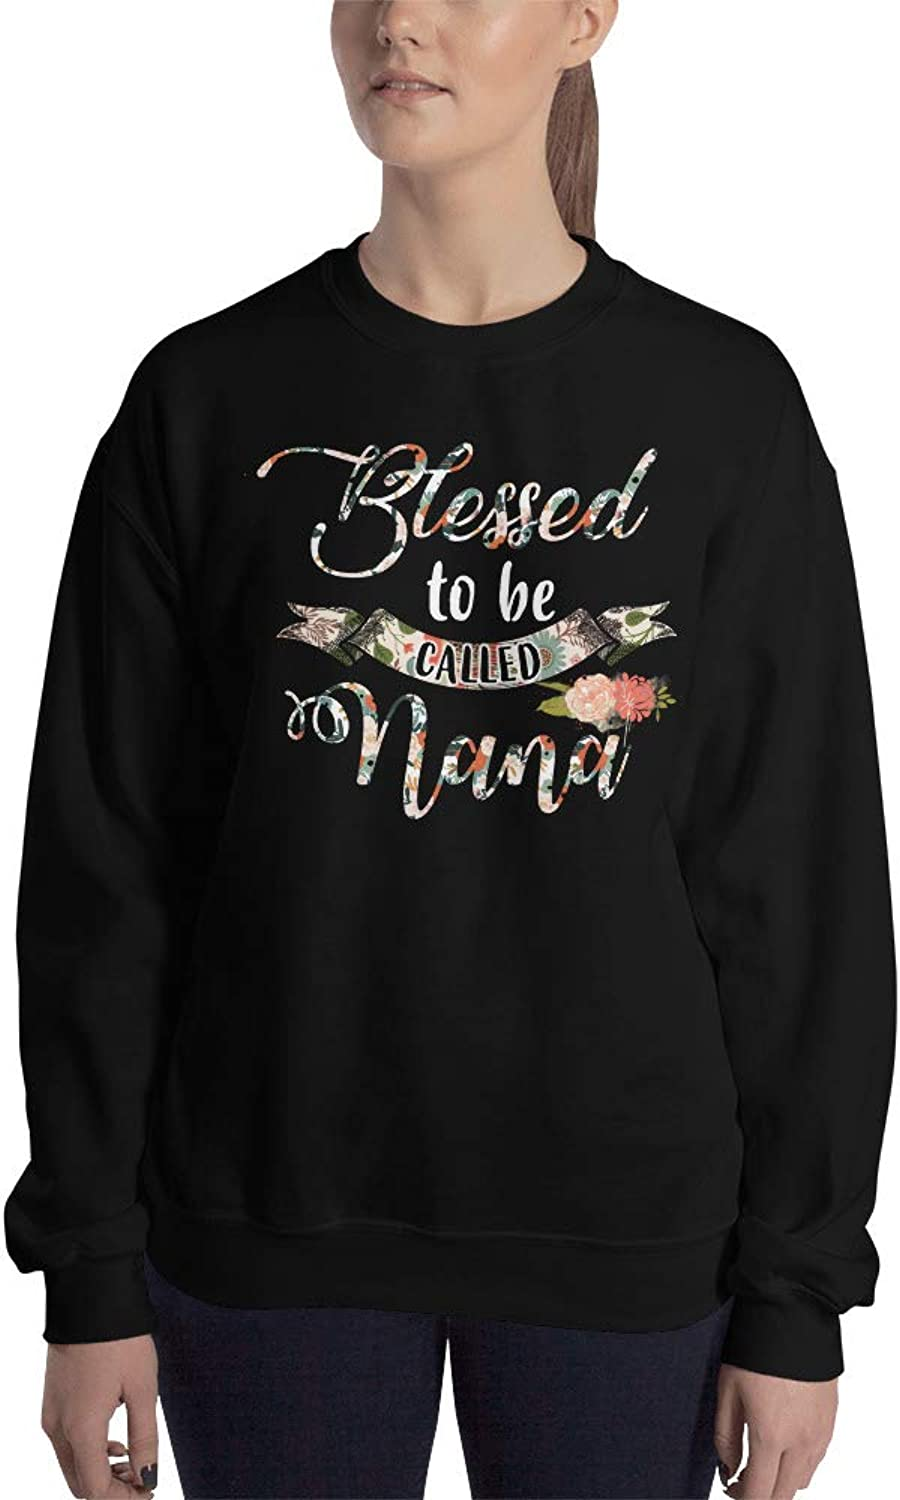 Payatek Blessed to Be Called Nana Unisex Sweatshirt Meaningful Present for Grandmother